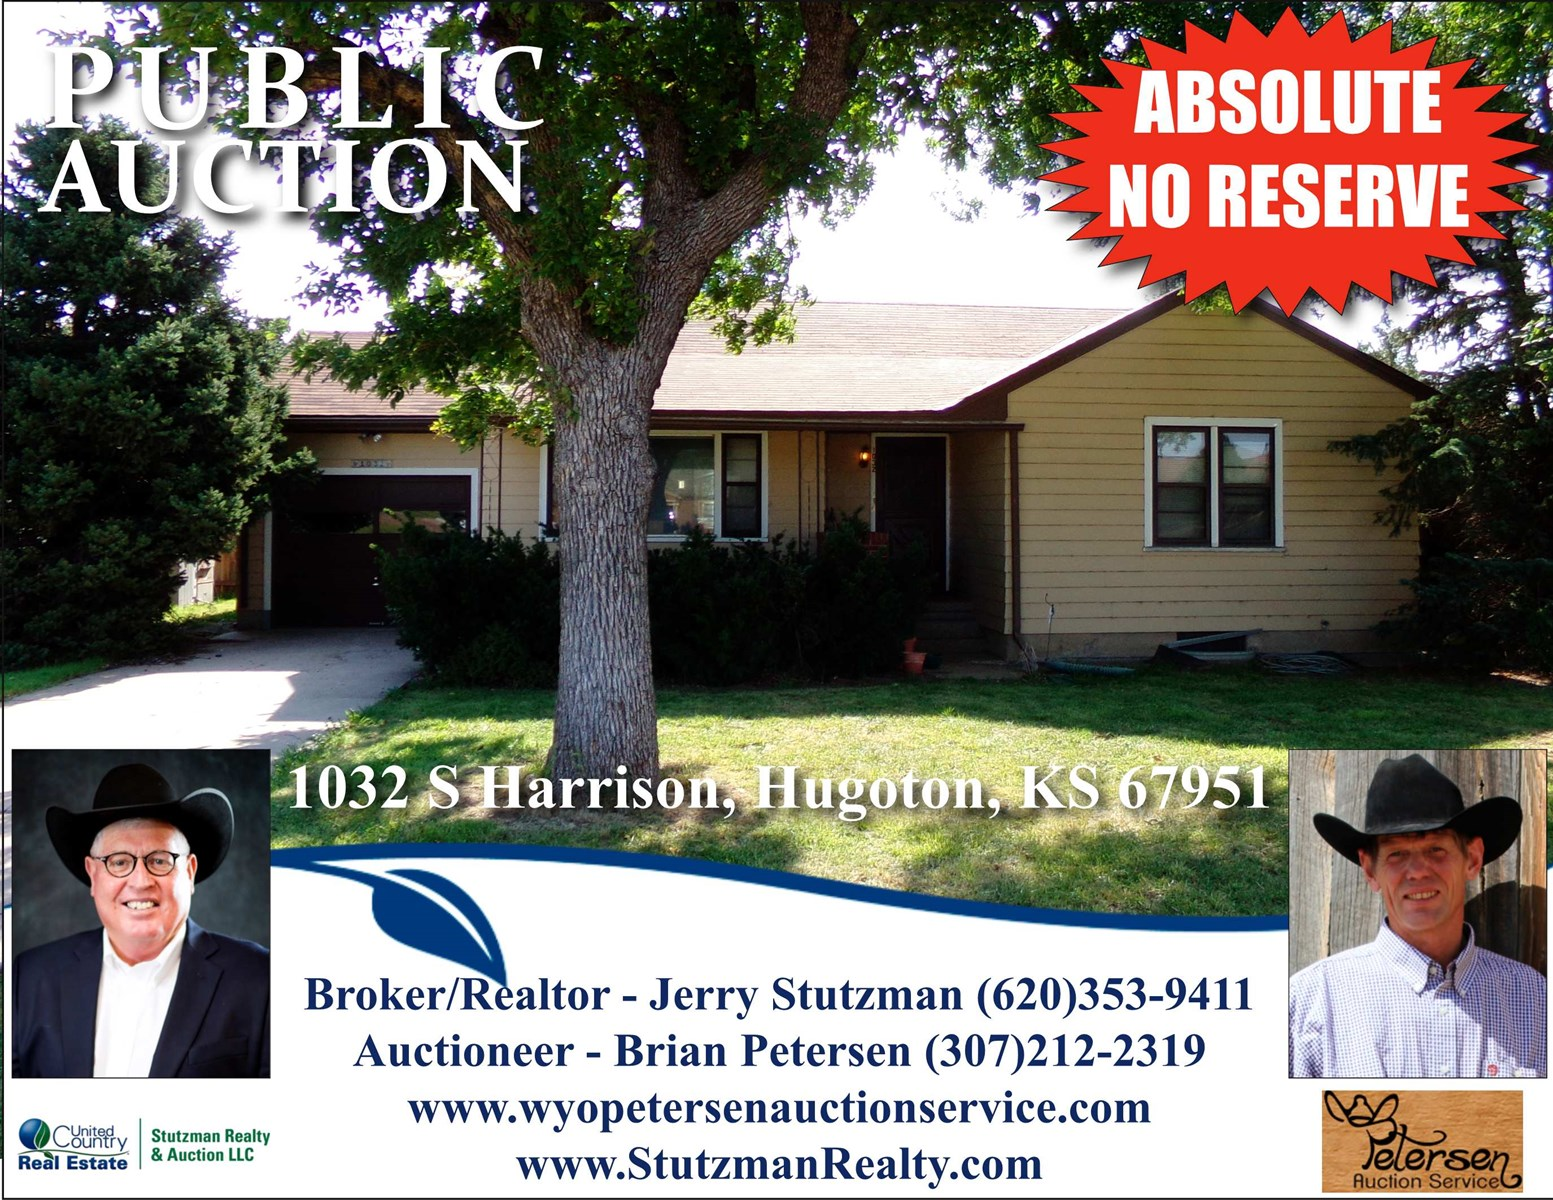 HUGOTON, KS HOME FOR AUCTION SATURDAY OCTOBER 3, 2020